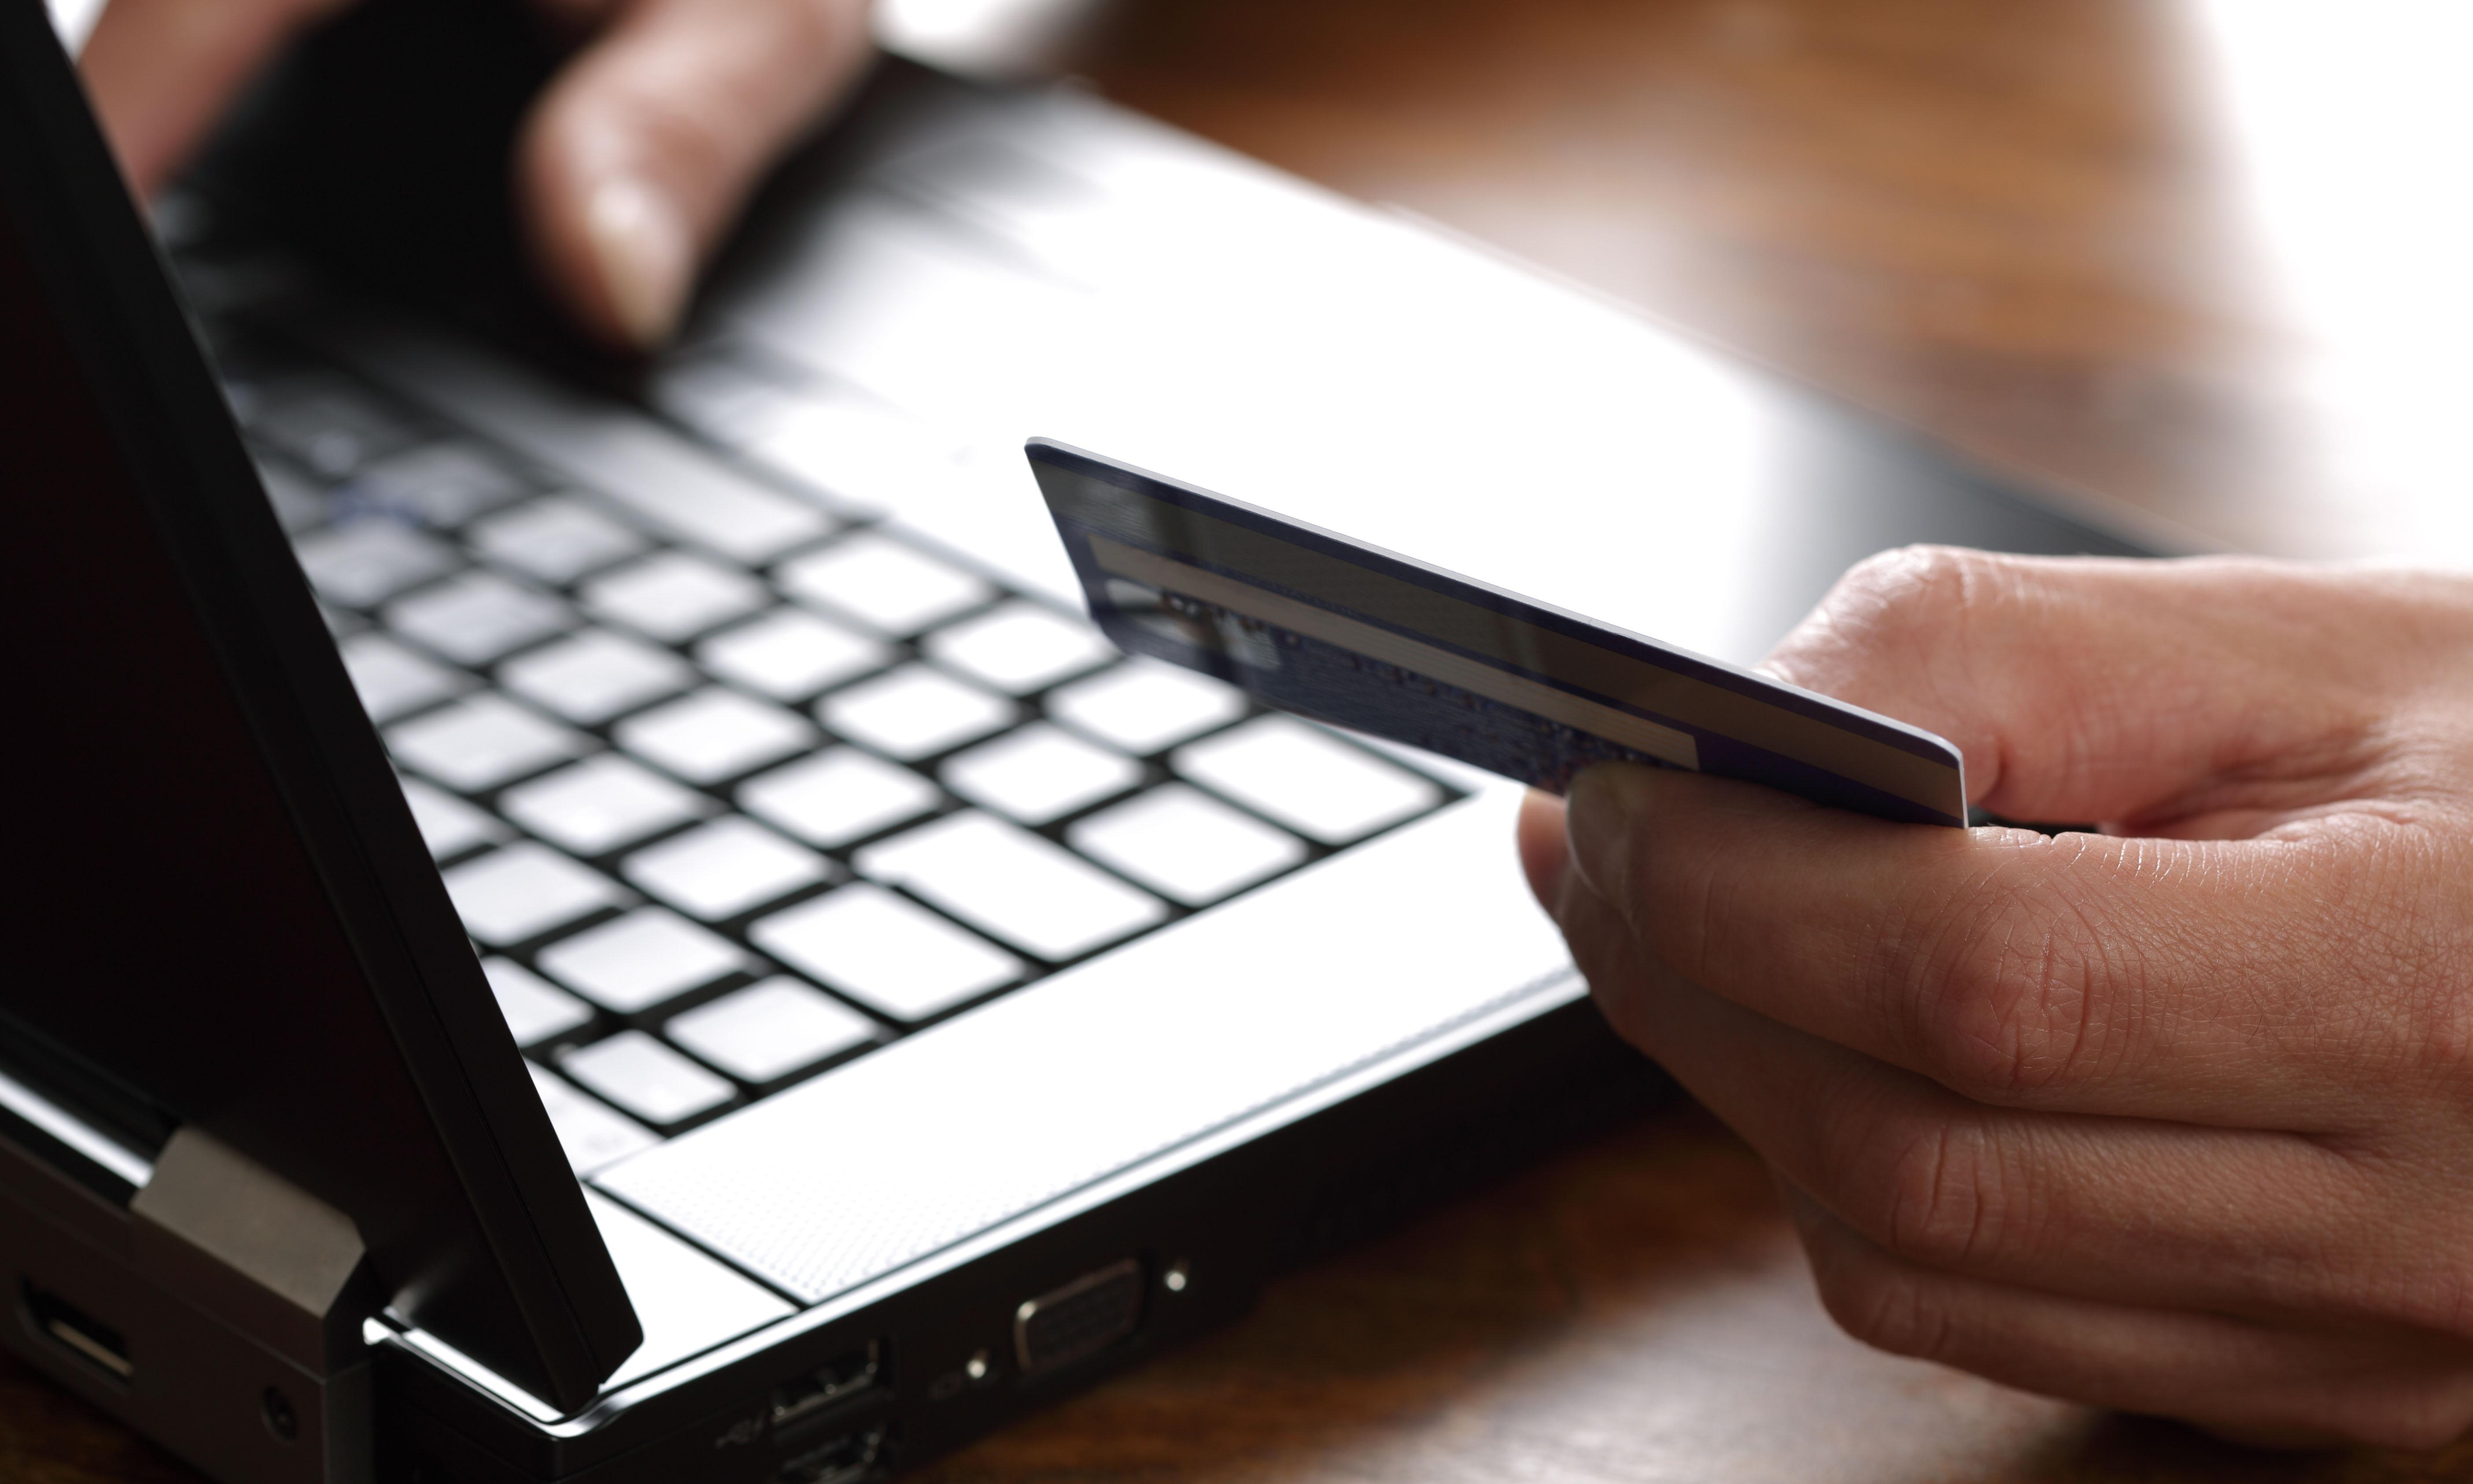 Cyber attack warning after millions stolen from UK bank accounts